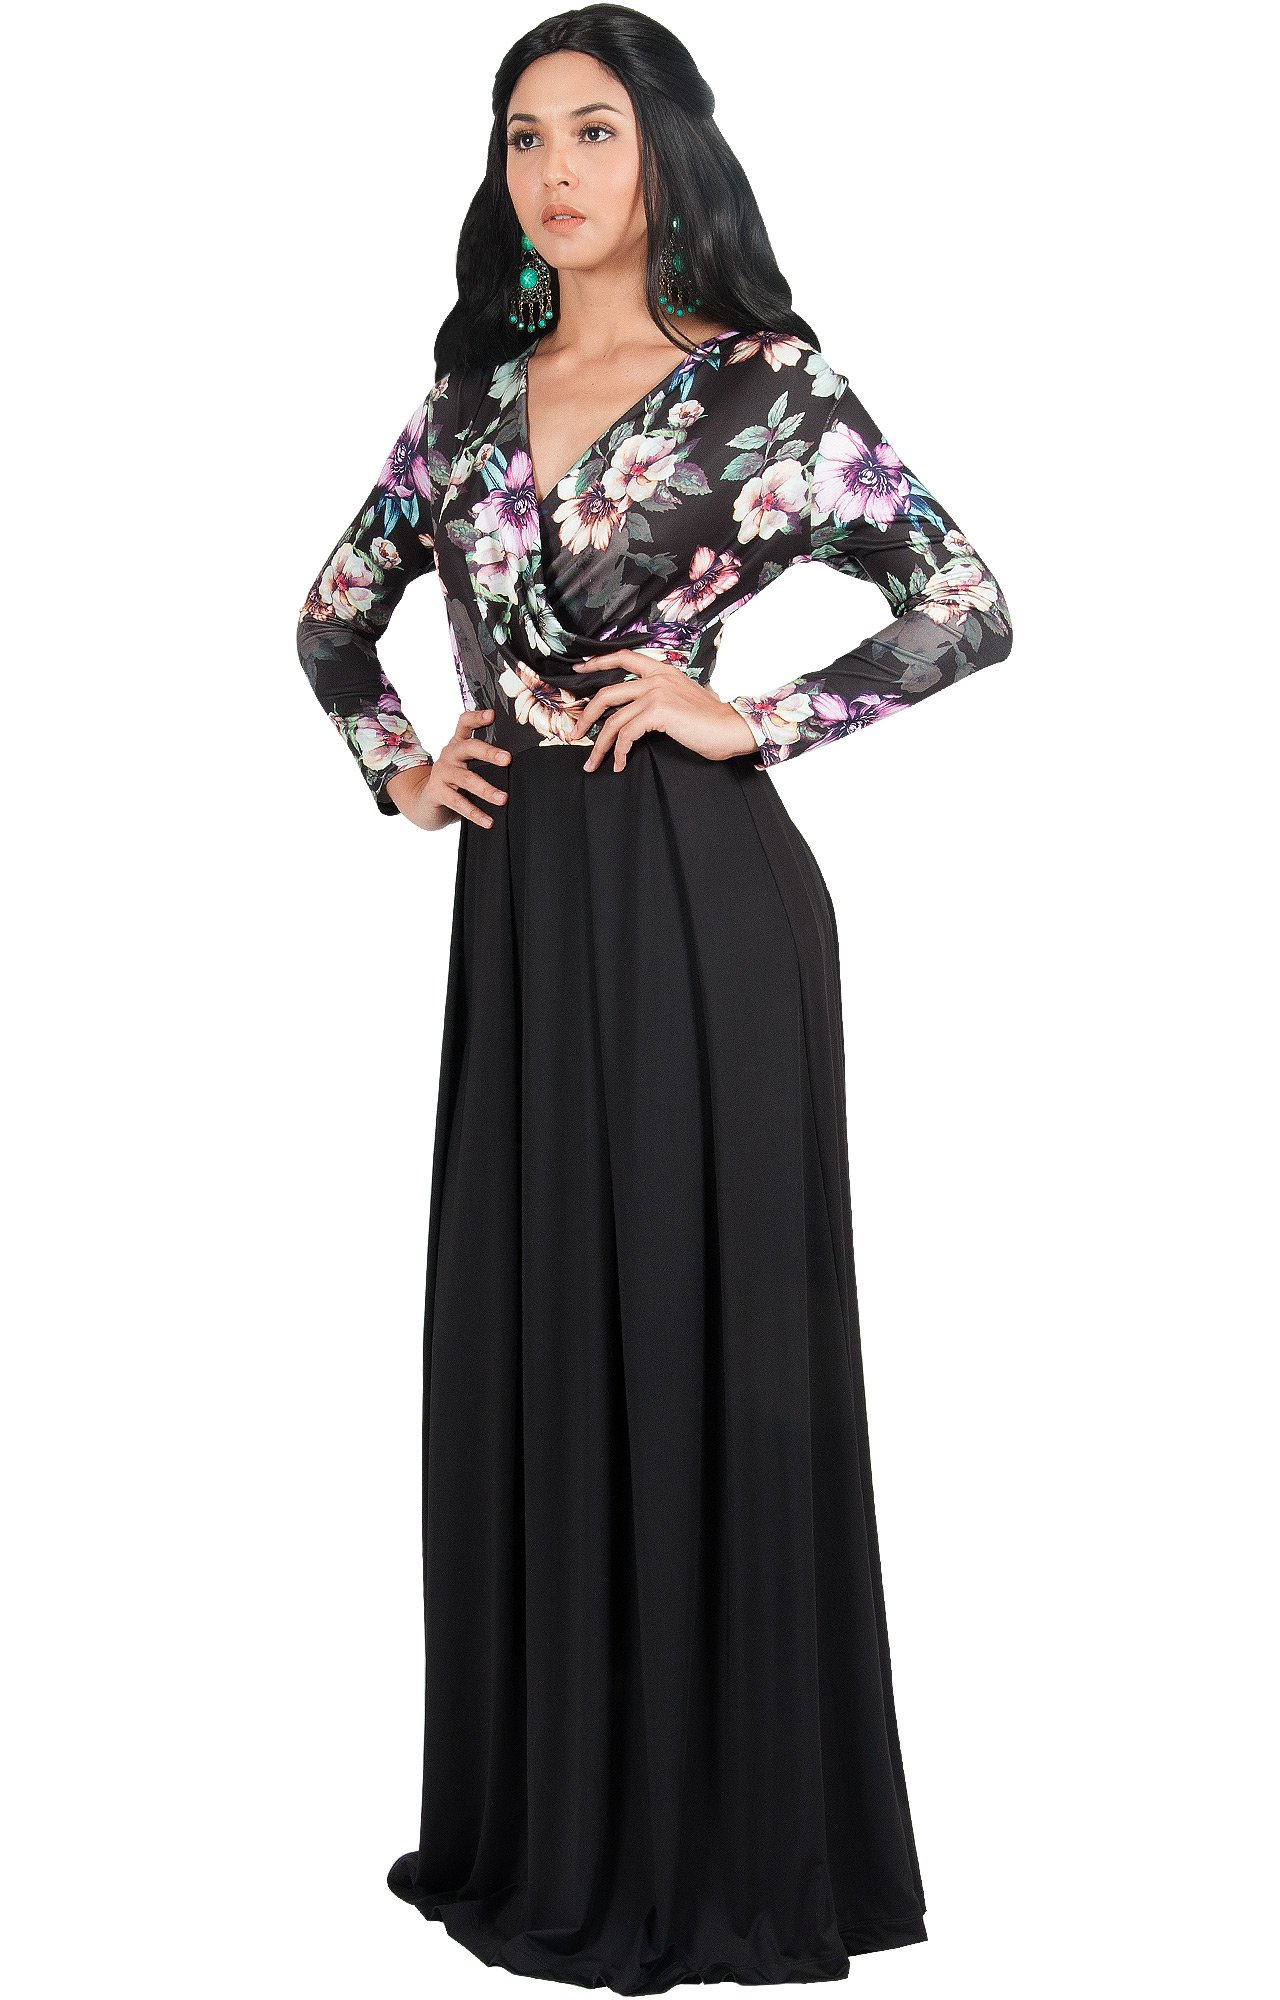 ebe27373335 ... Floral Print Wedding Guest Formal Cocktail Evening Floor Length Gown  Gowns Maxi Dress Dresses with Sleeves